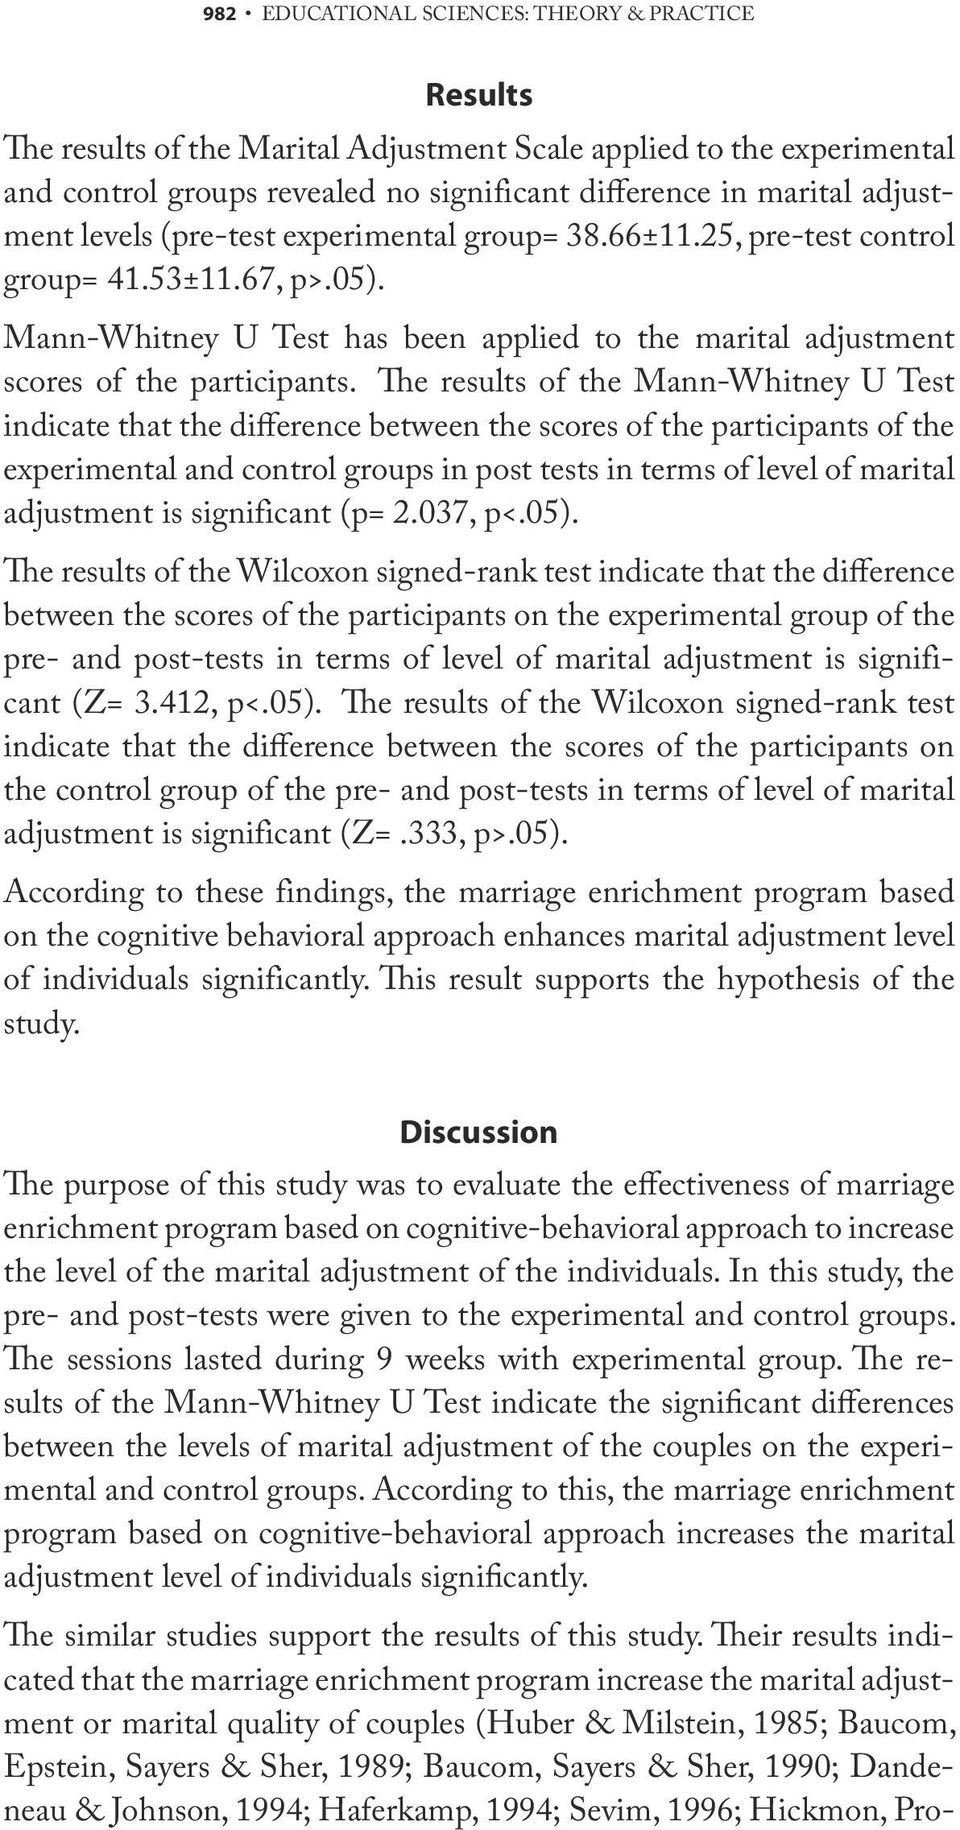 The results of the Mann-Whitney U Test indicate that the difference between the scores of the participants of the experimental and control groups in post tests in terms of level of marital adjustment